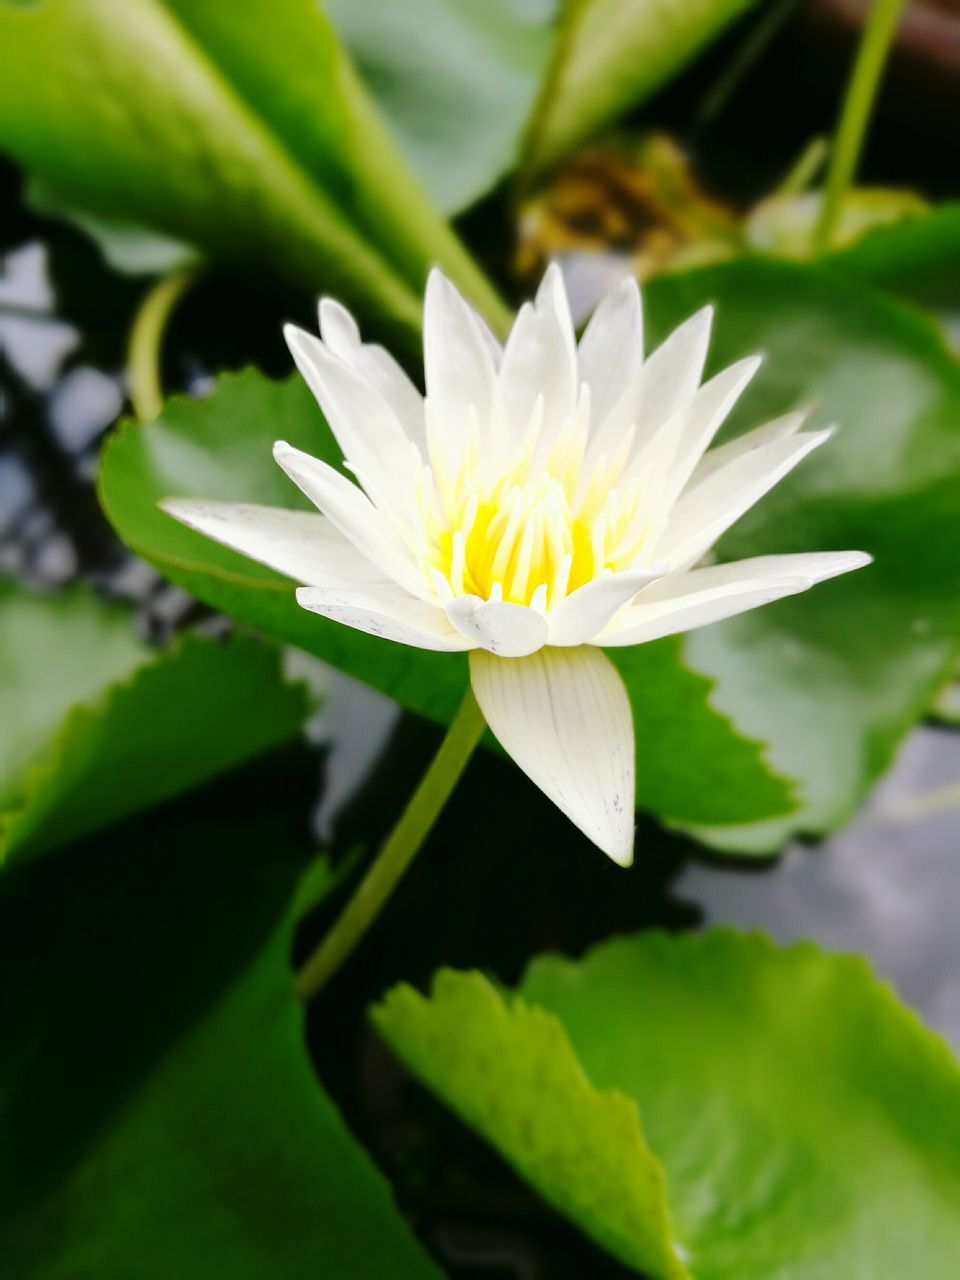 flower, petal, beauty in nature, nature, fragility, freshness, flower head, growth, white color, plant, leaf, water lily, green color, close-up, no people, lotus water lily, blooming, day, outdoors, lily pad